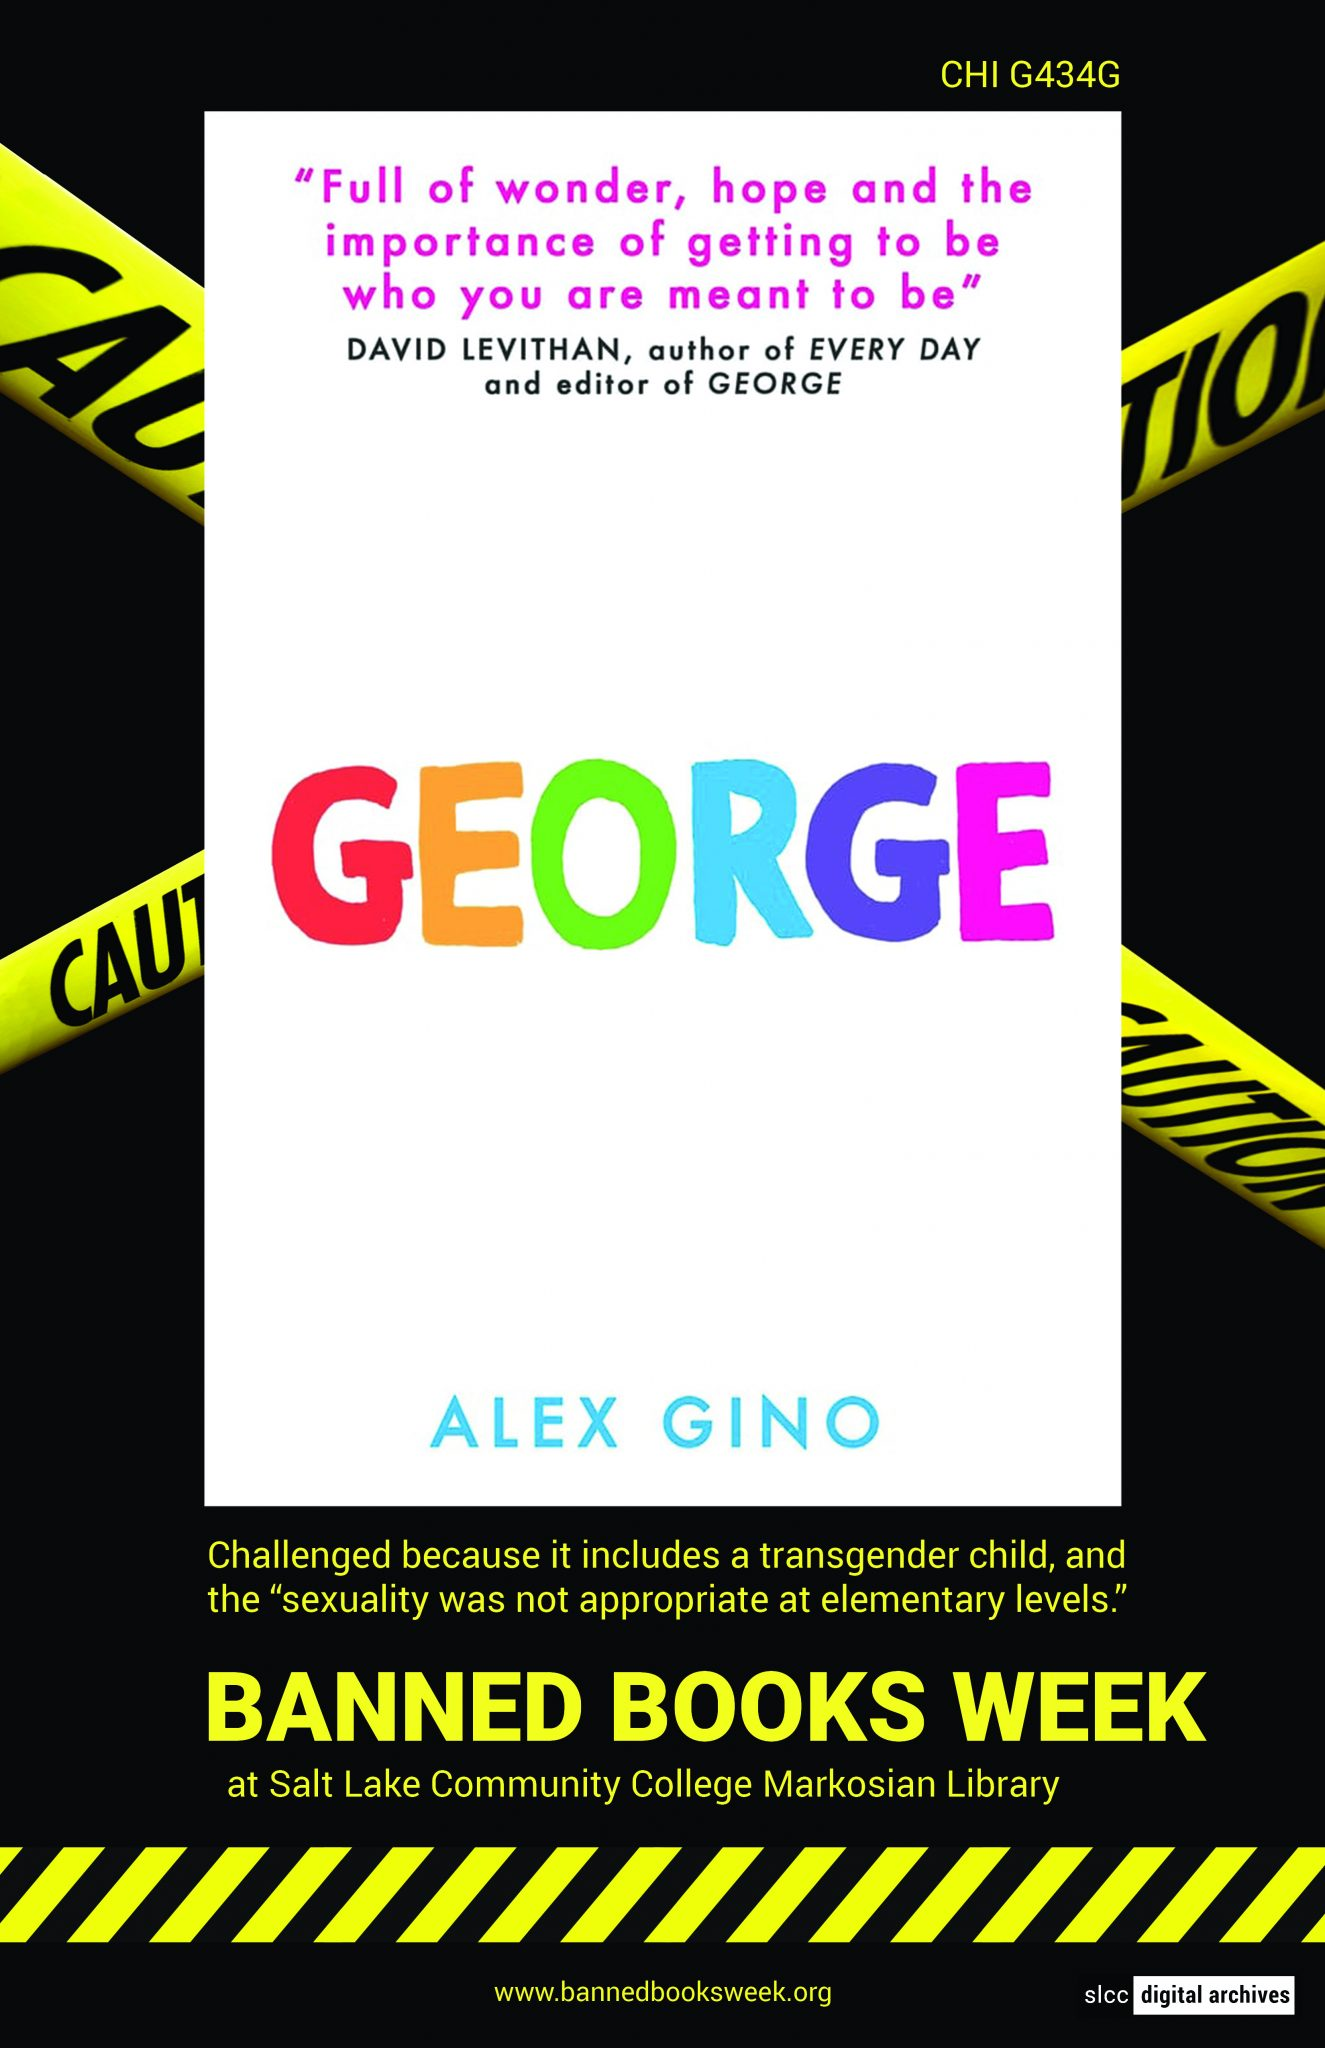 Banned Books Week Poster: George by Alex Gino